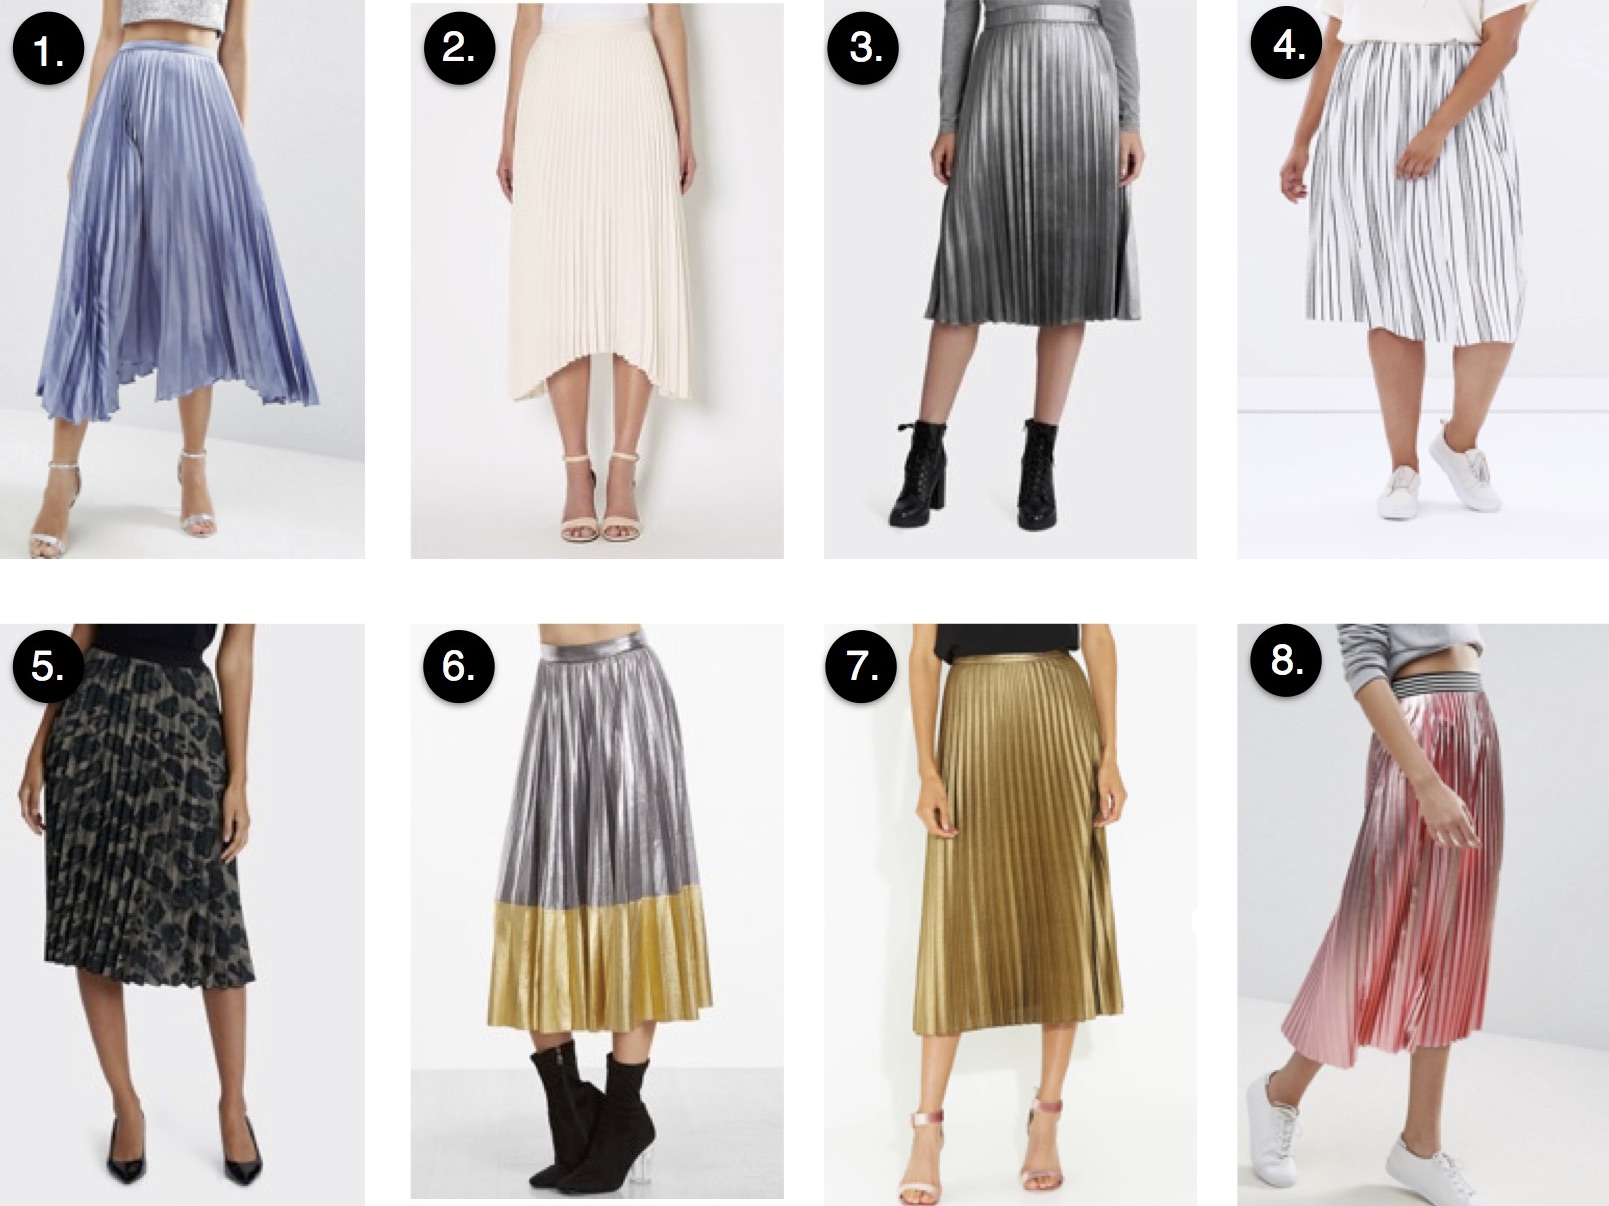 06cac5bee Witchery Pleated Skirt, $149 | 3. Piper Petites Pleat Lurex Skirt, $89.95 |  4. Atmos & Here Samantha Pleat Skirt, $59.95 | 5.